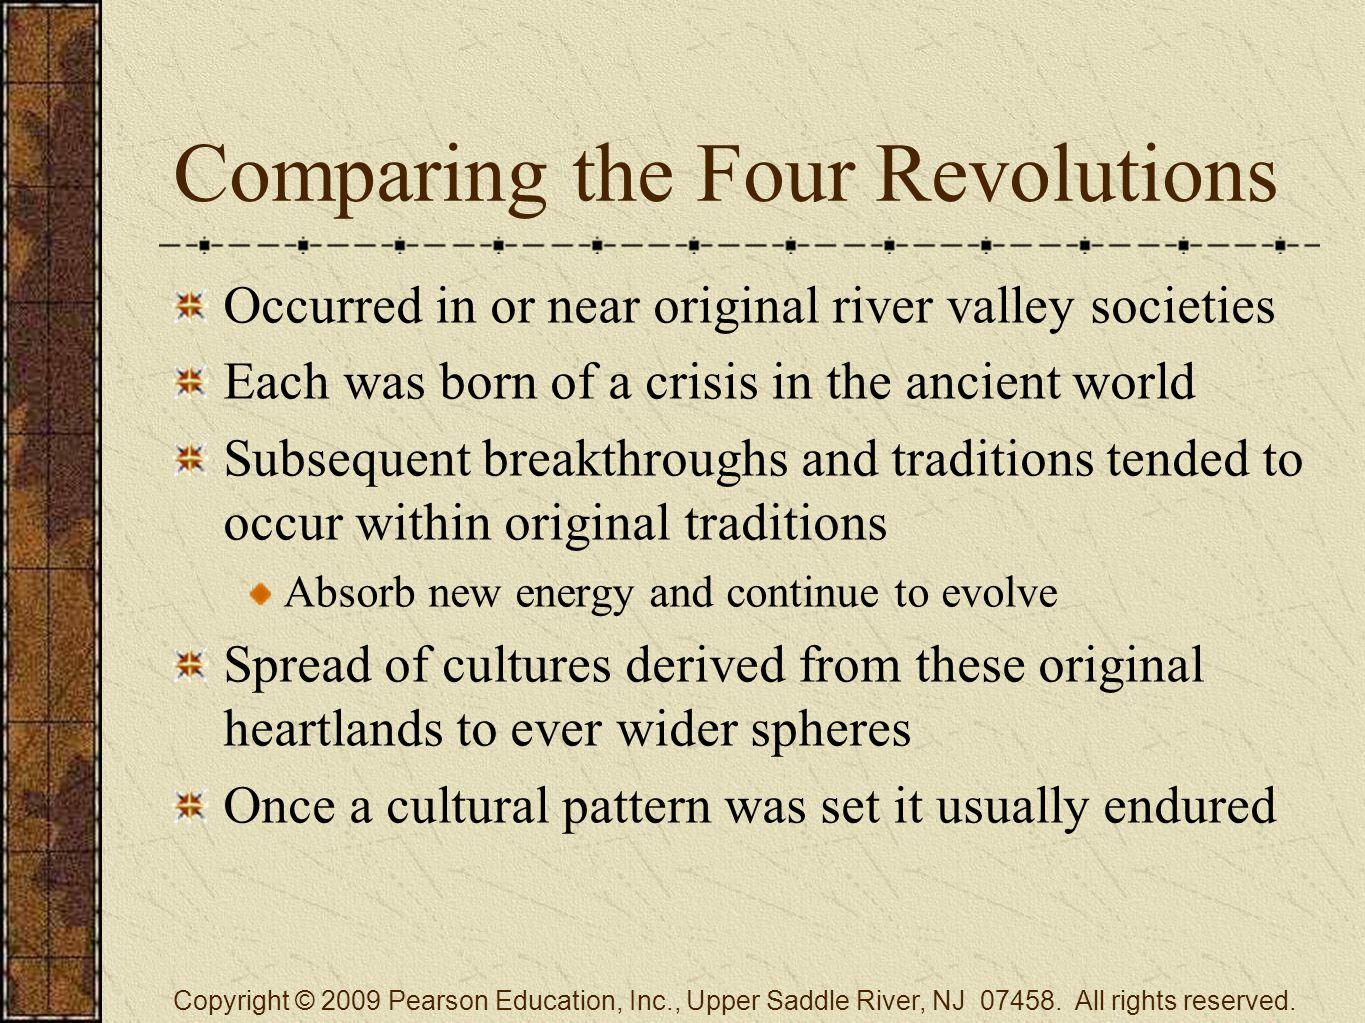 Comparing the Four Revolutions Occurred in or near original river valley societies Each was born of a crisis in the ancient world Subsequent breakthroughs and traditions tended to occur within original traditions Absorb new energy and continue to evolve Spread of cultures derived from these original heartlands to ever wider spheres Once a cultural pattern was set it usually endured Copyright © 2009 Pearson Education, Inc., Upper Saddle River, NJ 07458.